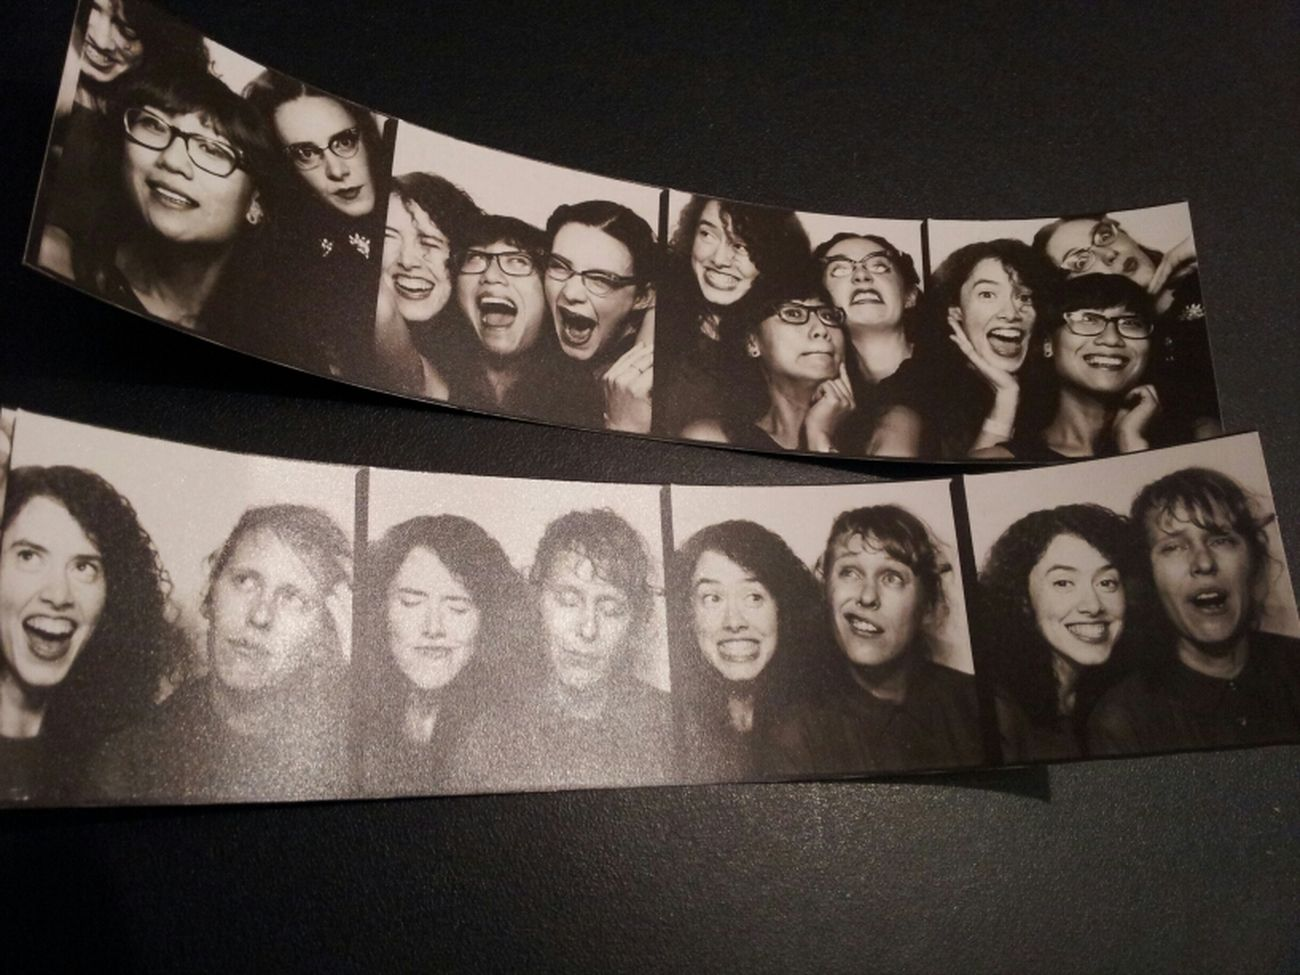 Photoautomat Picz From #scxmas12 Party